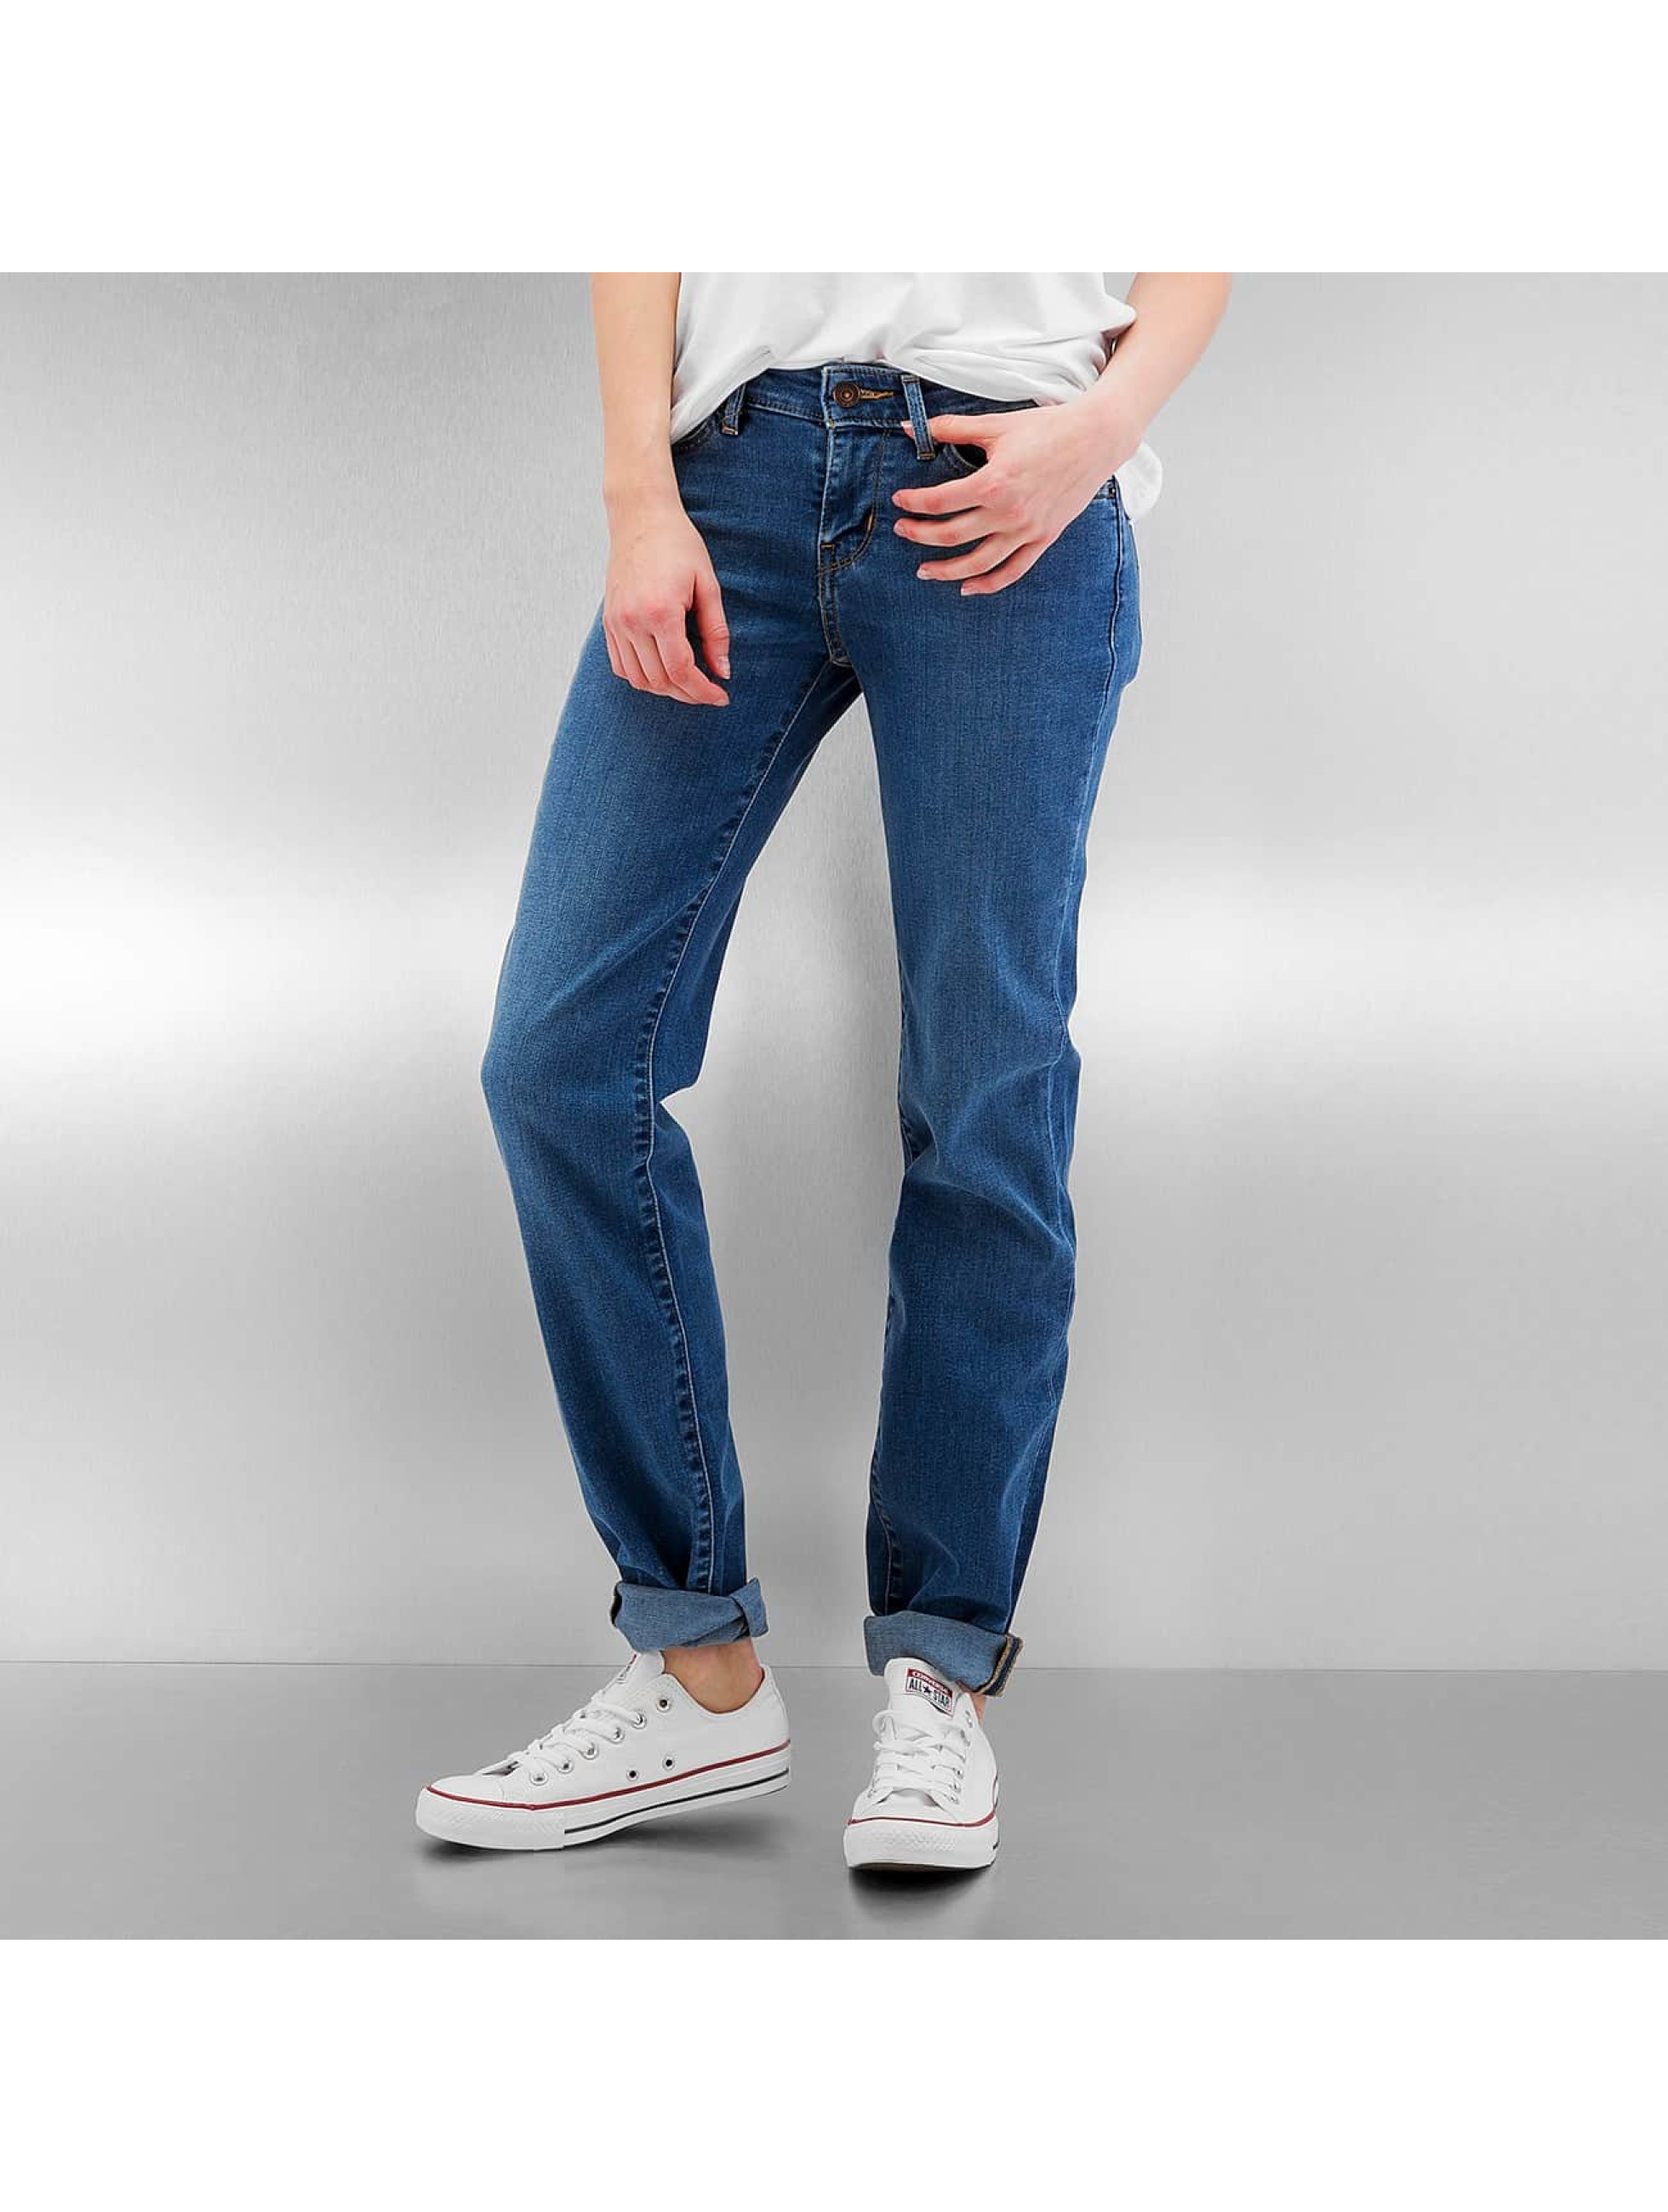 Straight Fit Jeans 714 in blau